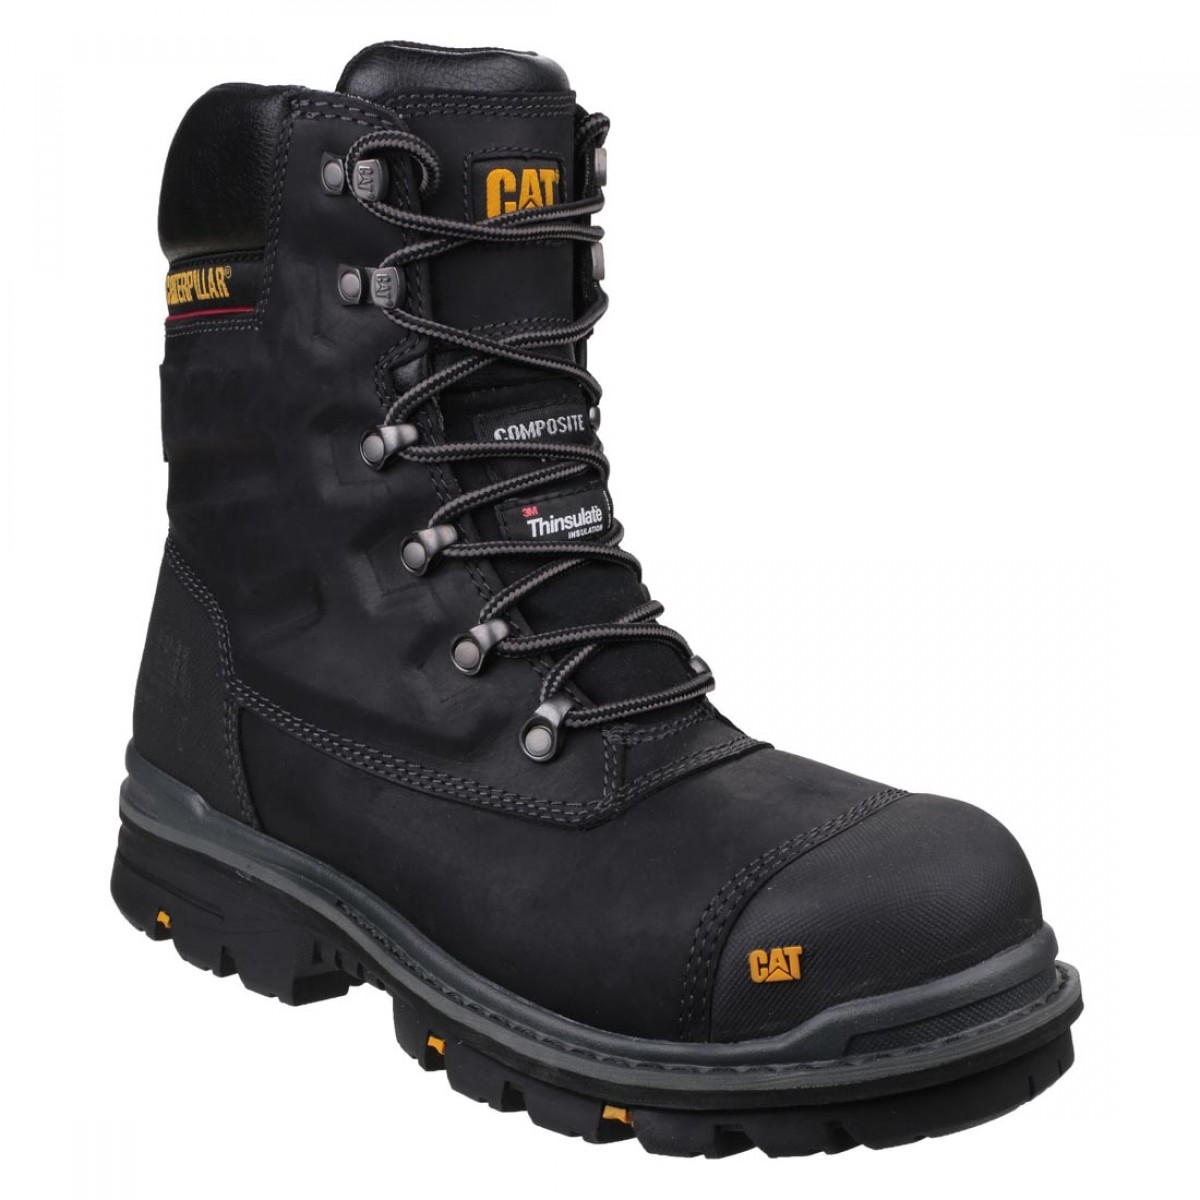 09d0fdbb6db Caterpillar Premier Waterproof Black Leather Mens S3 Safety Work Boots